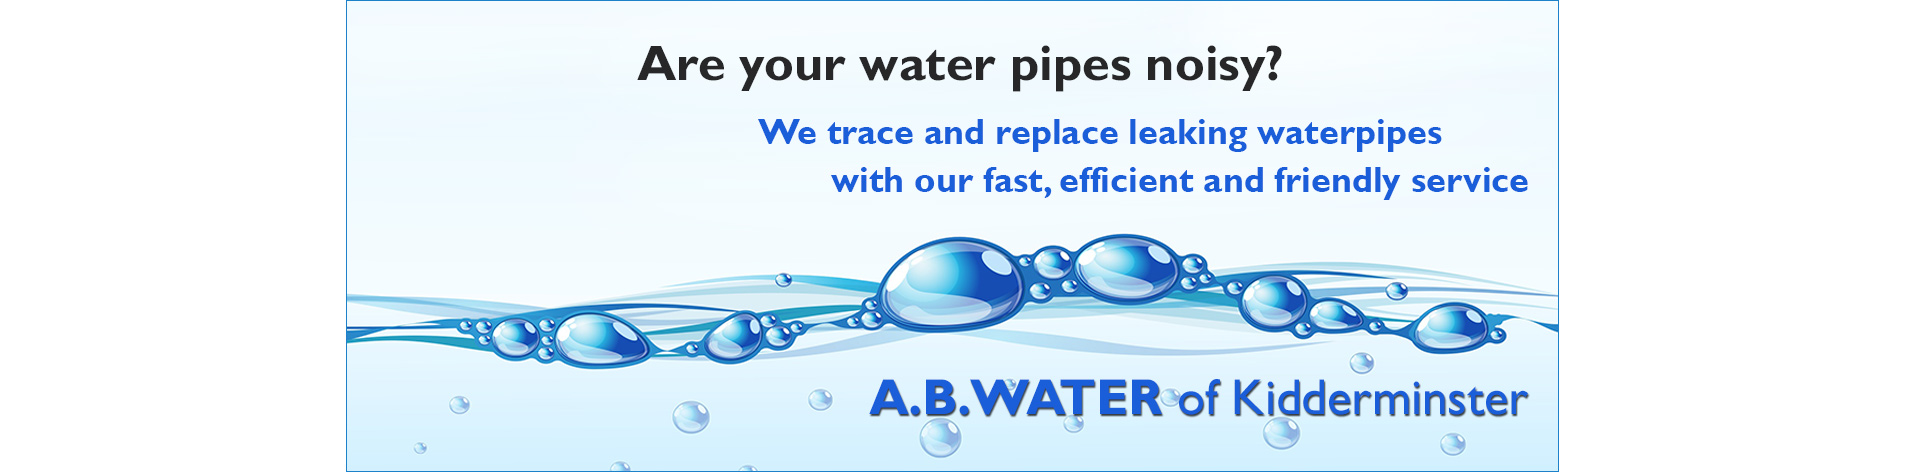 water-pipe-replacement-service-kidderminster